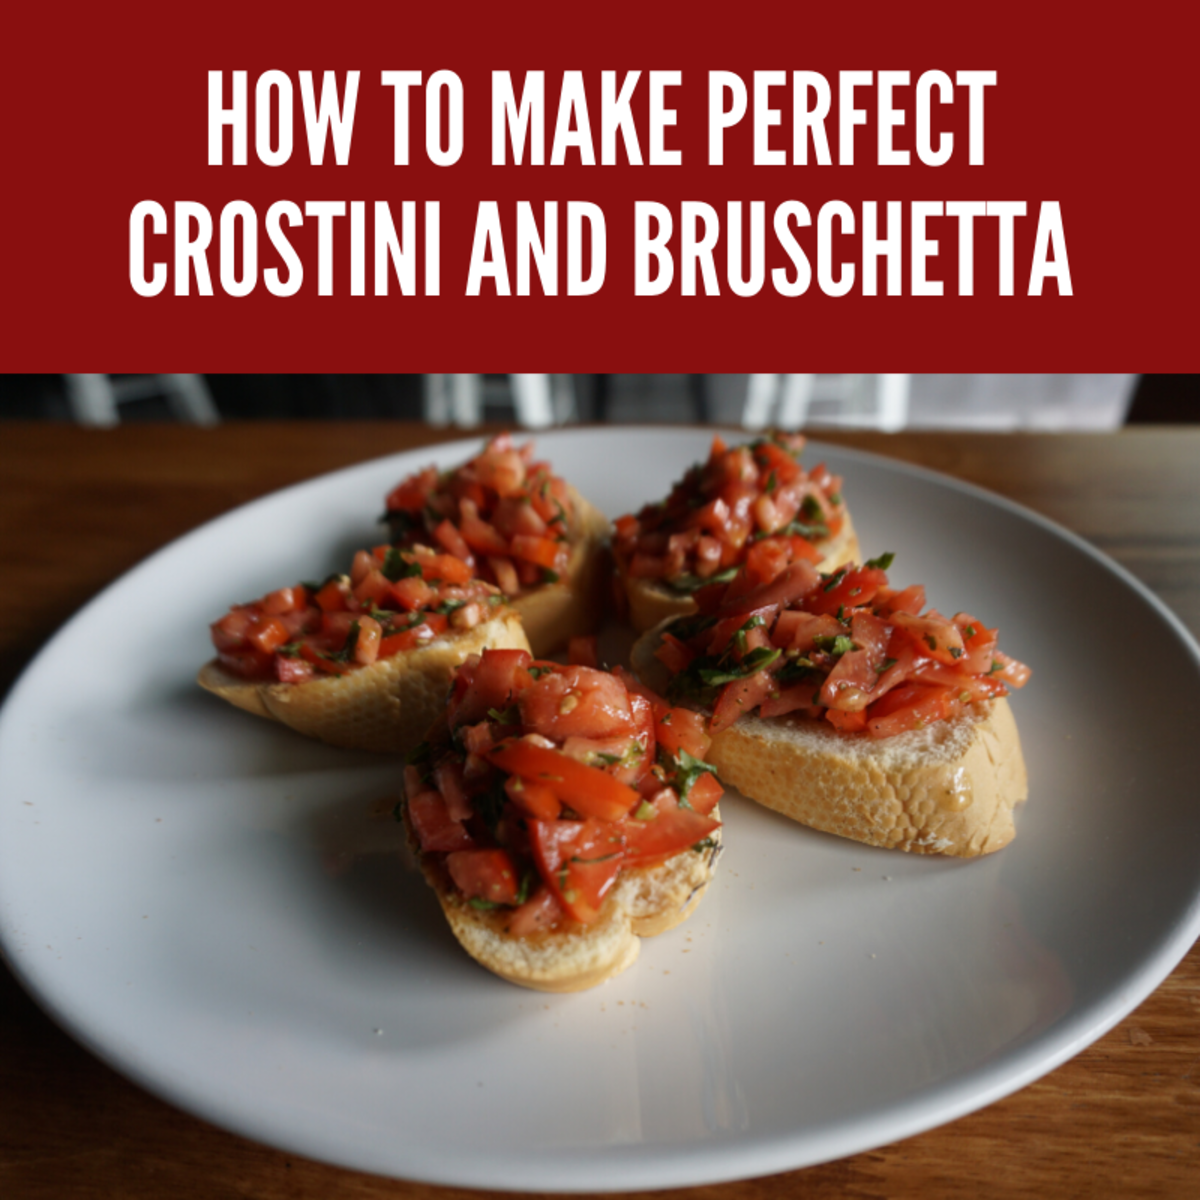 Crostini and bruschetta are the perfect treats for get-togethers. These diverse recipes will make your mouth water.